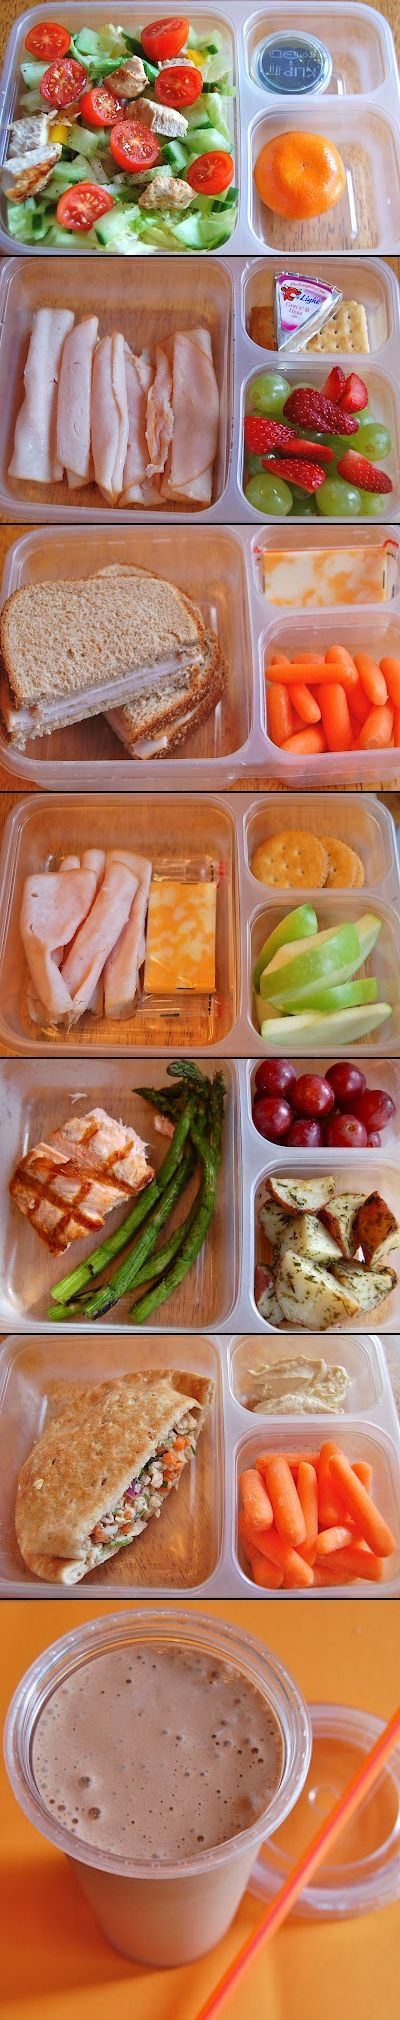 healthy lunch ideas you can buy the bento type containers ziploc at walmart target etc. Black Bedroom Furniture Sets. Home Design Ideas